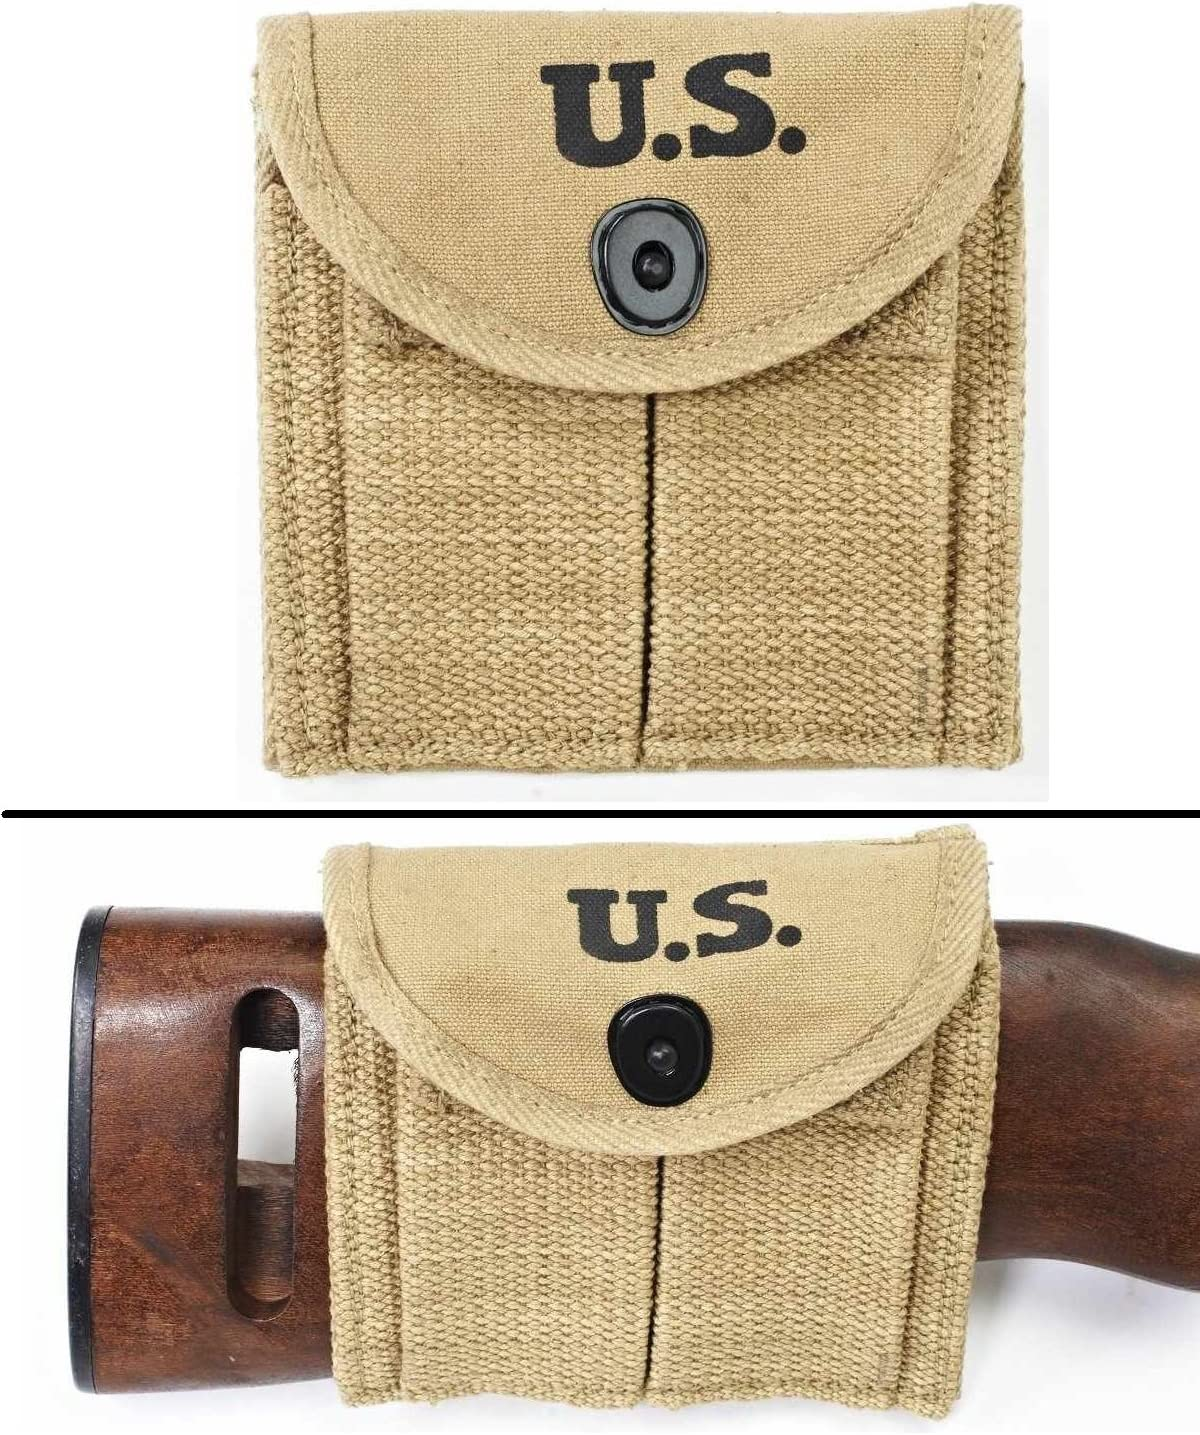 low-pricing Ultimate Arms Wholesale Gear M1 M-1 Carbine Marke Rifle Military U.S. WWII